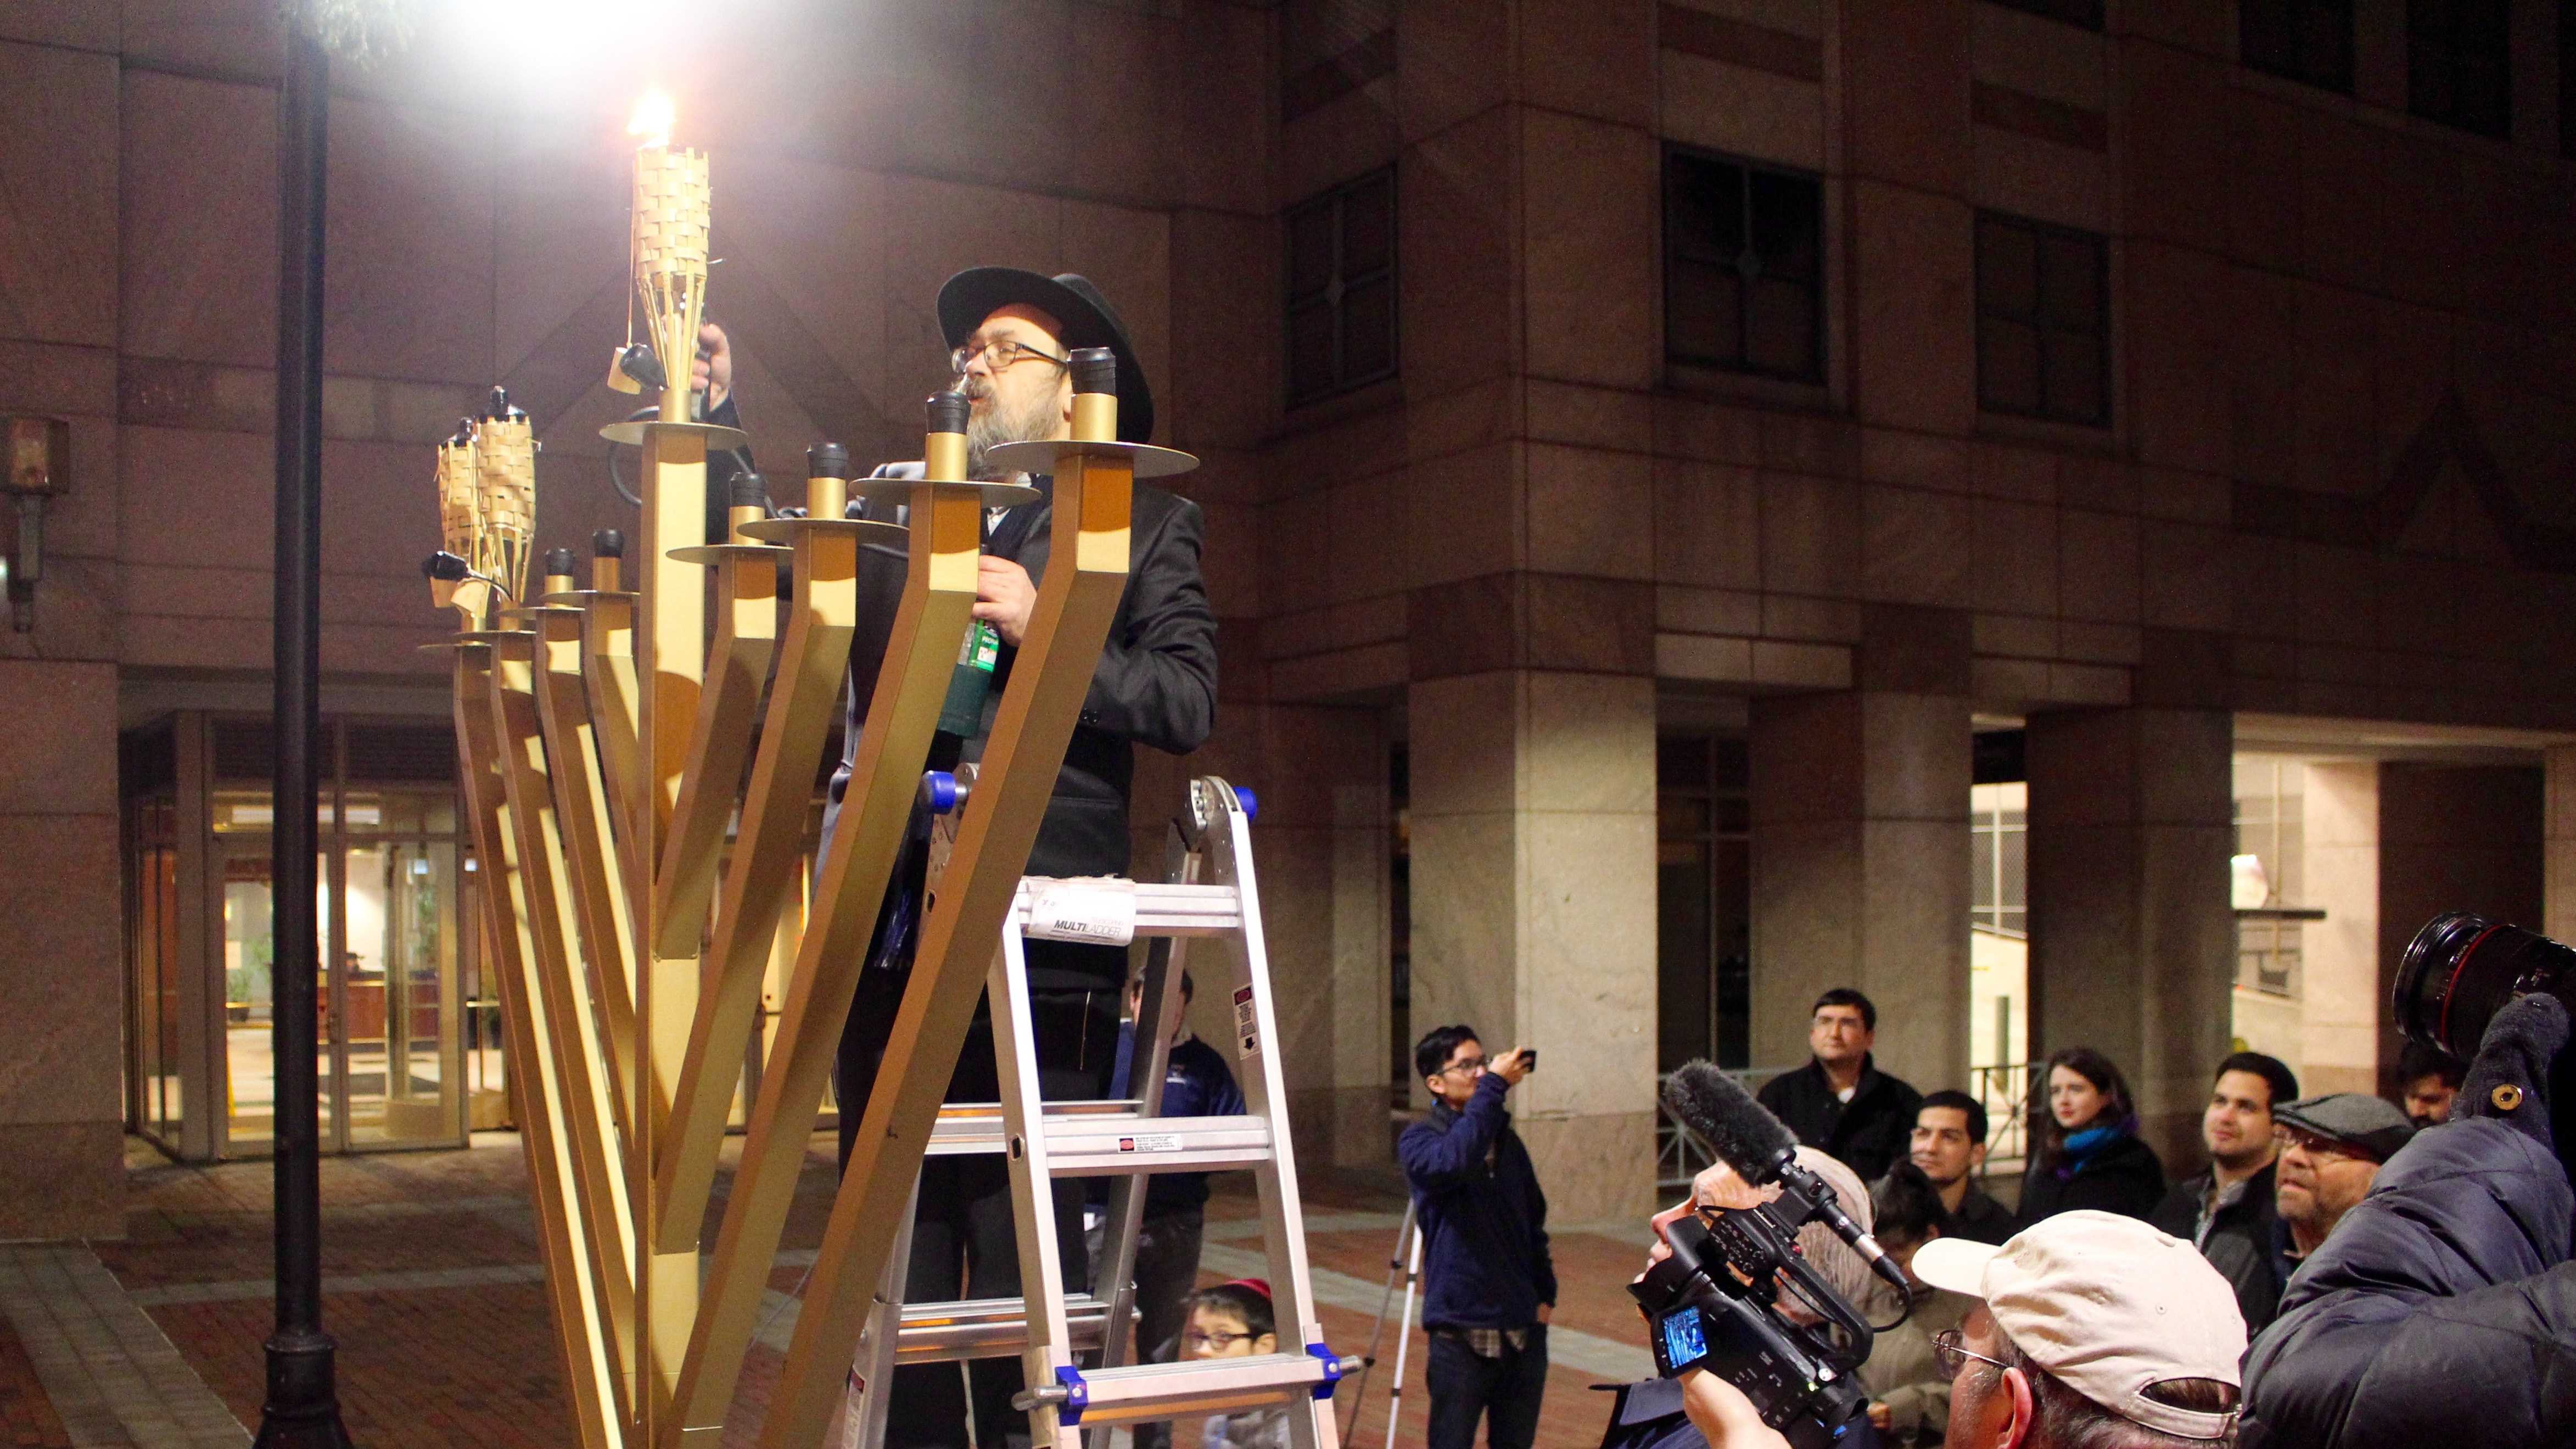 Rabbi Levi Krinsky lights the menorah.